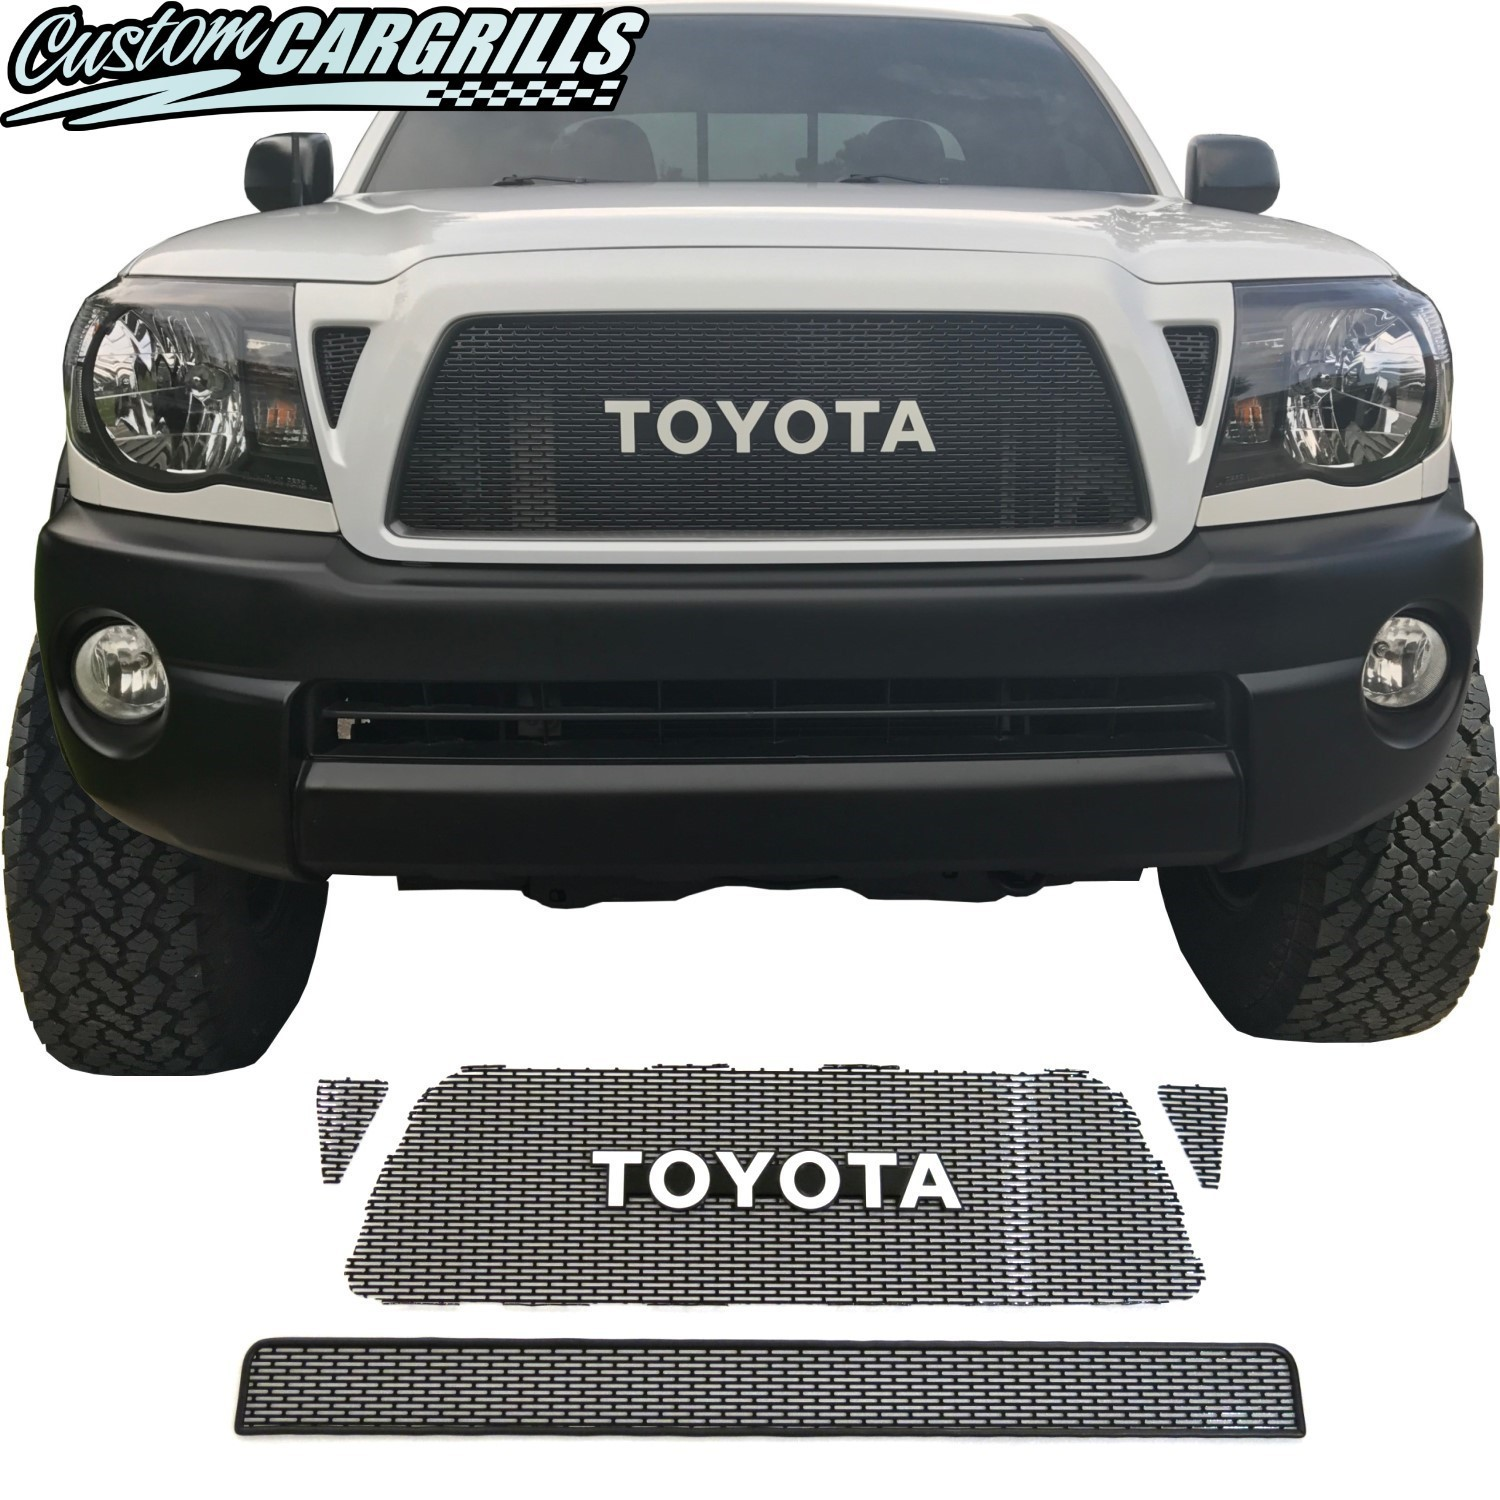 2005 - 2011 Toyota Tacoma Mesh Grill With Toyota Emblem